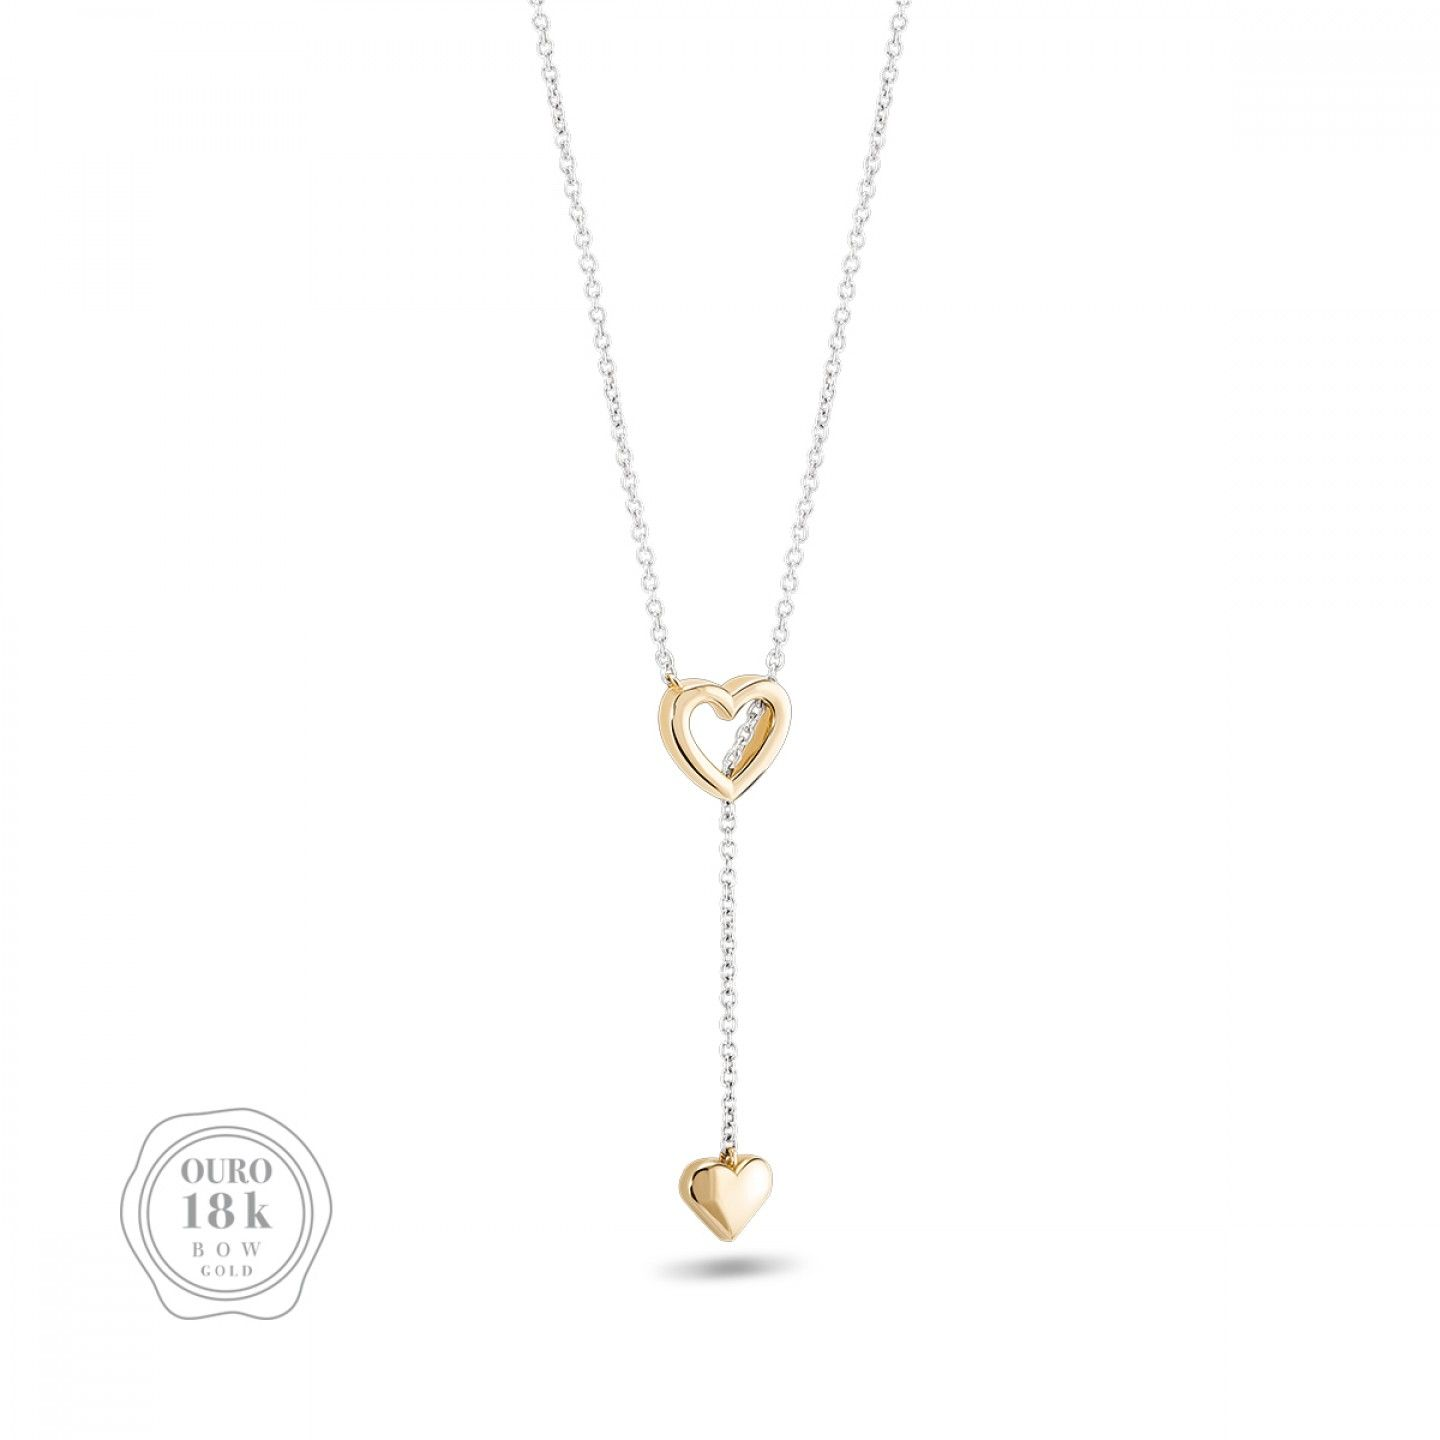 COLAR BOW GOLD TWO HEARTS III